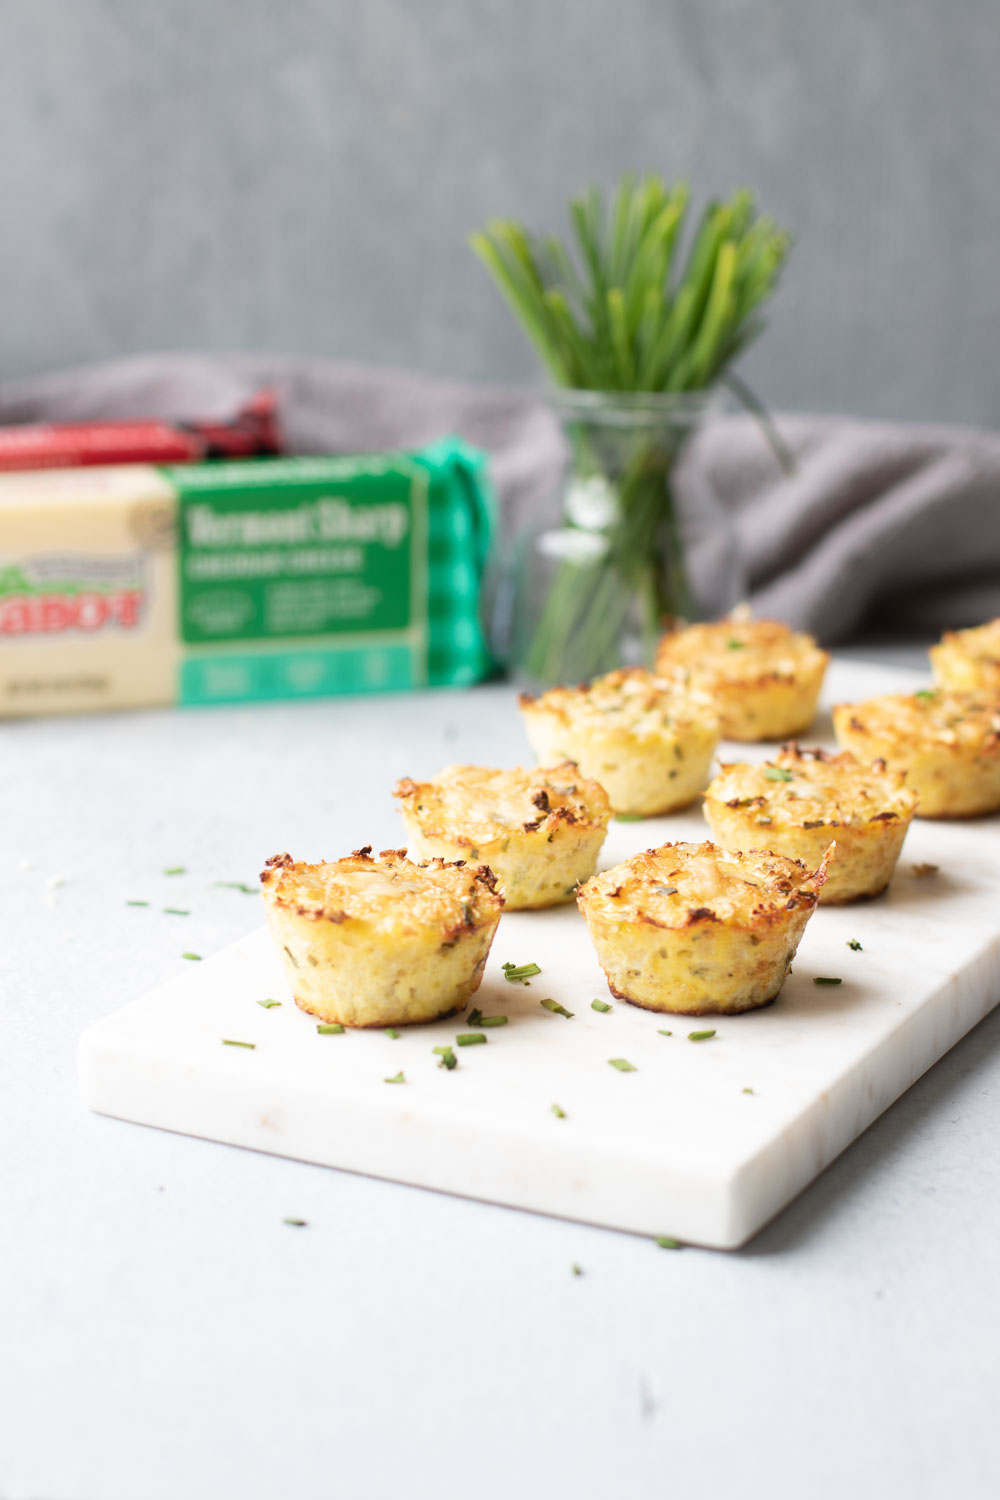 Cabot White Cheddar with Cauliflower Bites Vertical